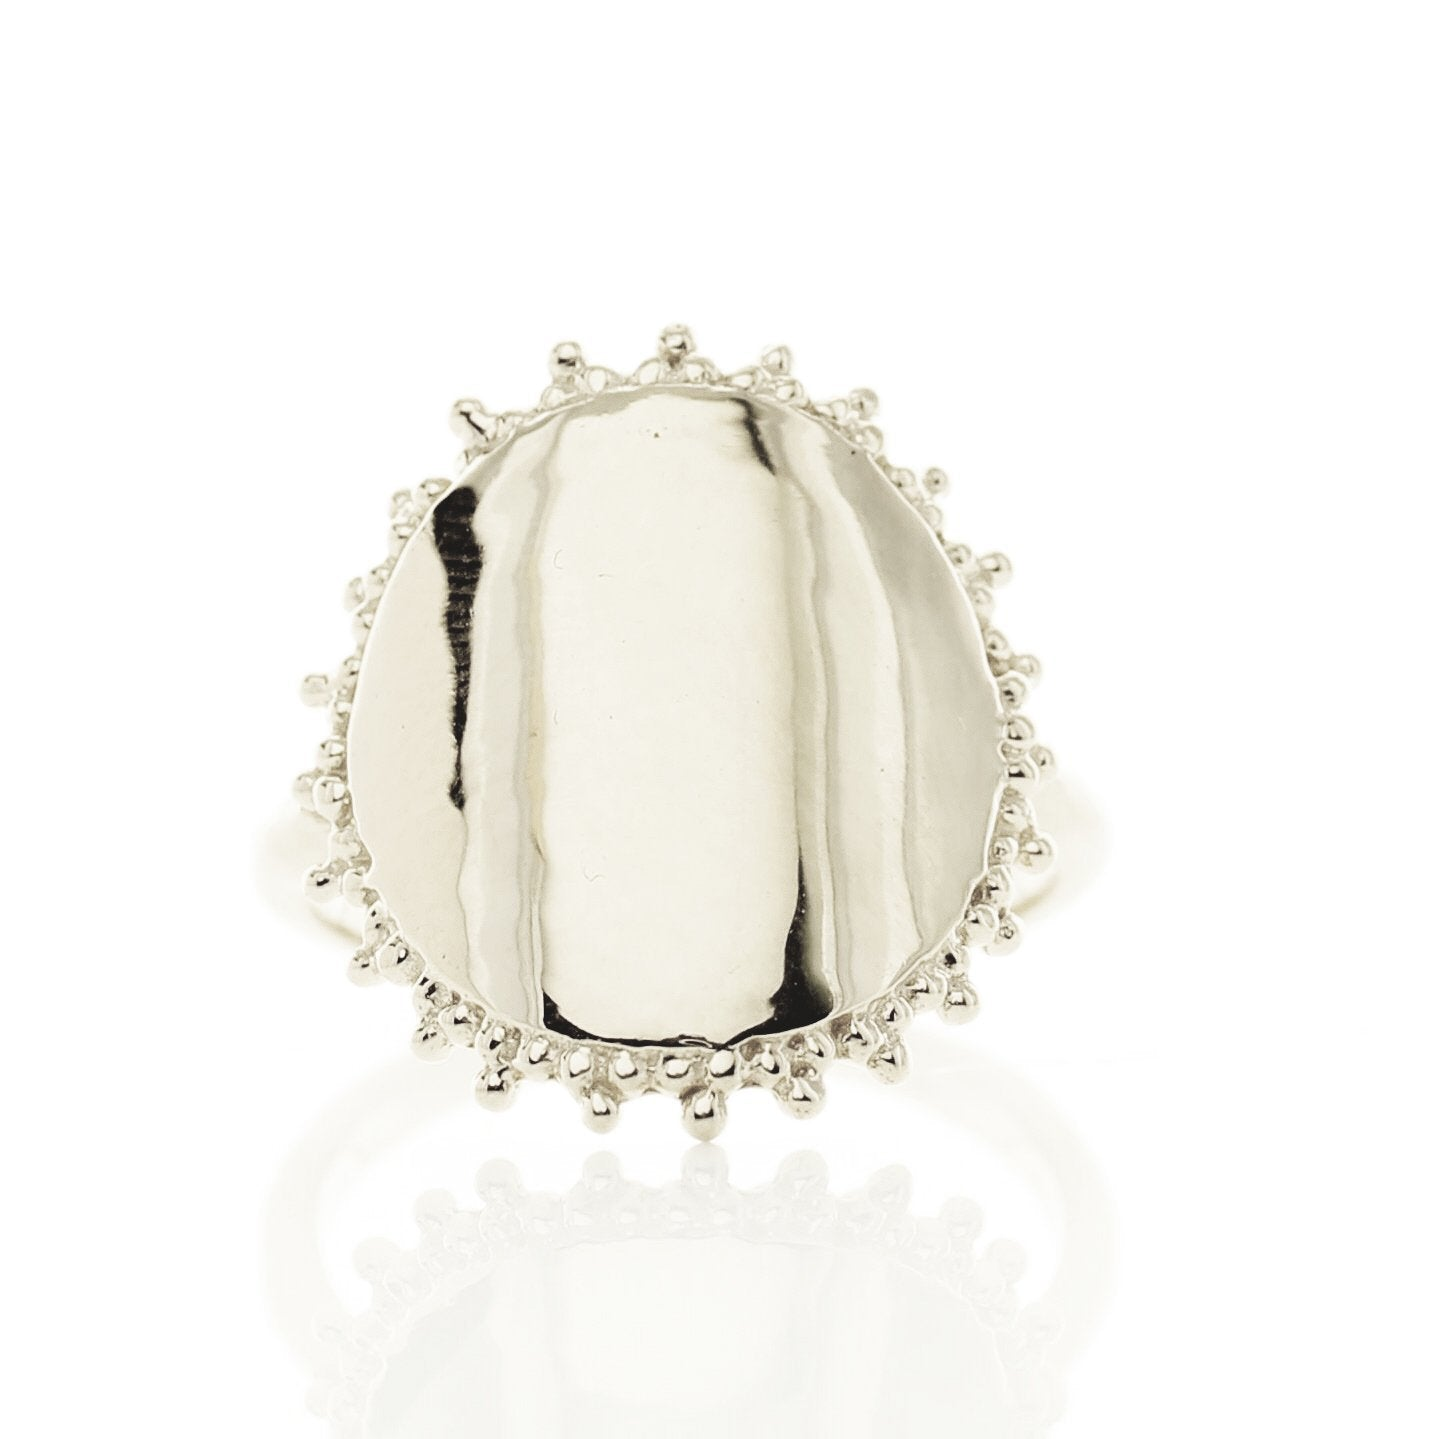 BELIEVE SOLEIL RING - SILVER - SO PRETTY CARA COTTER